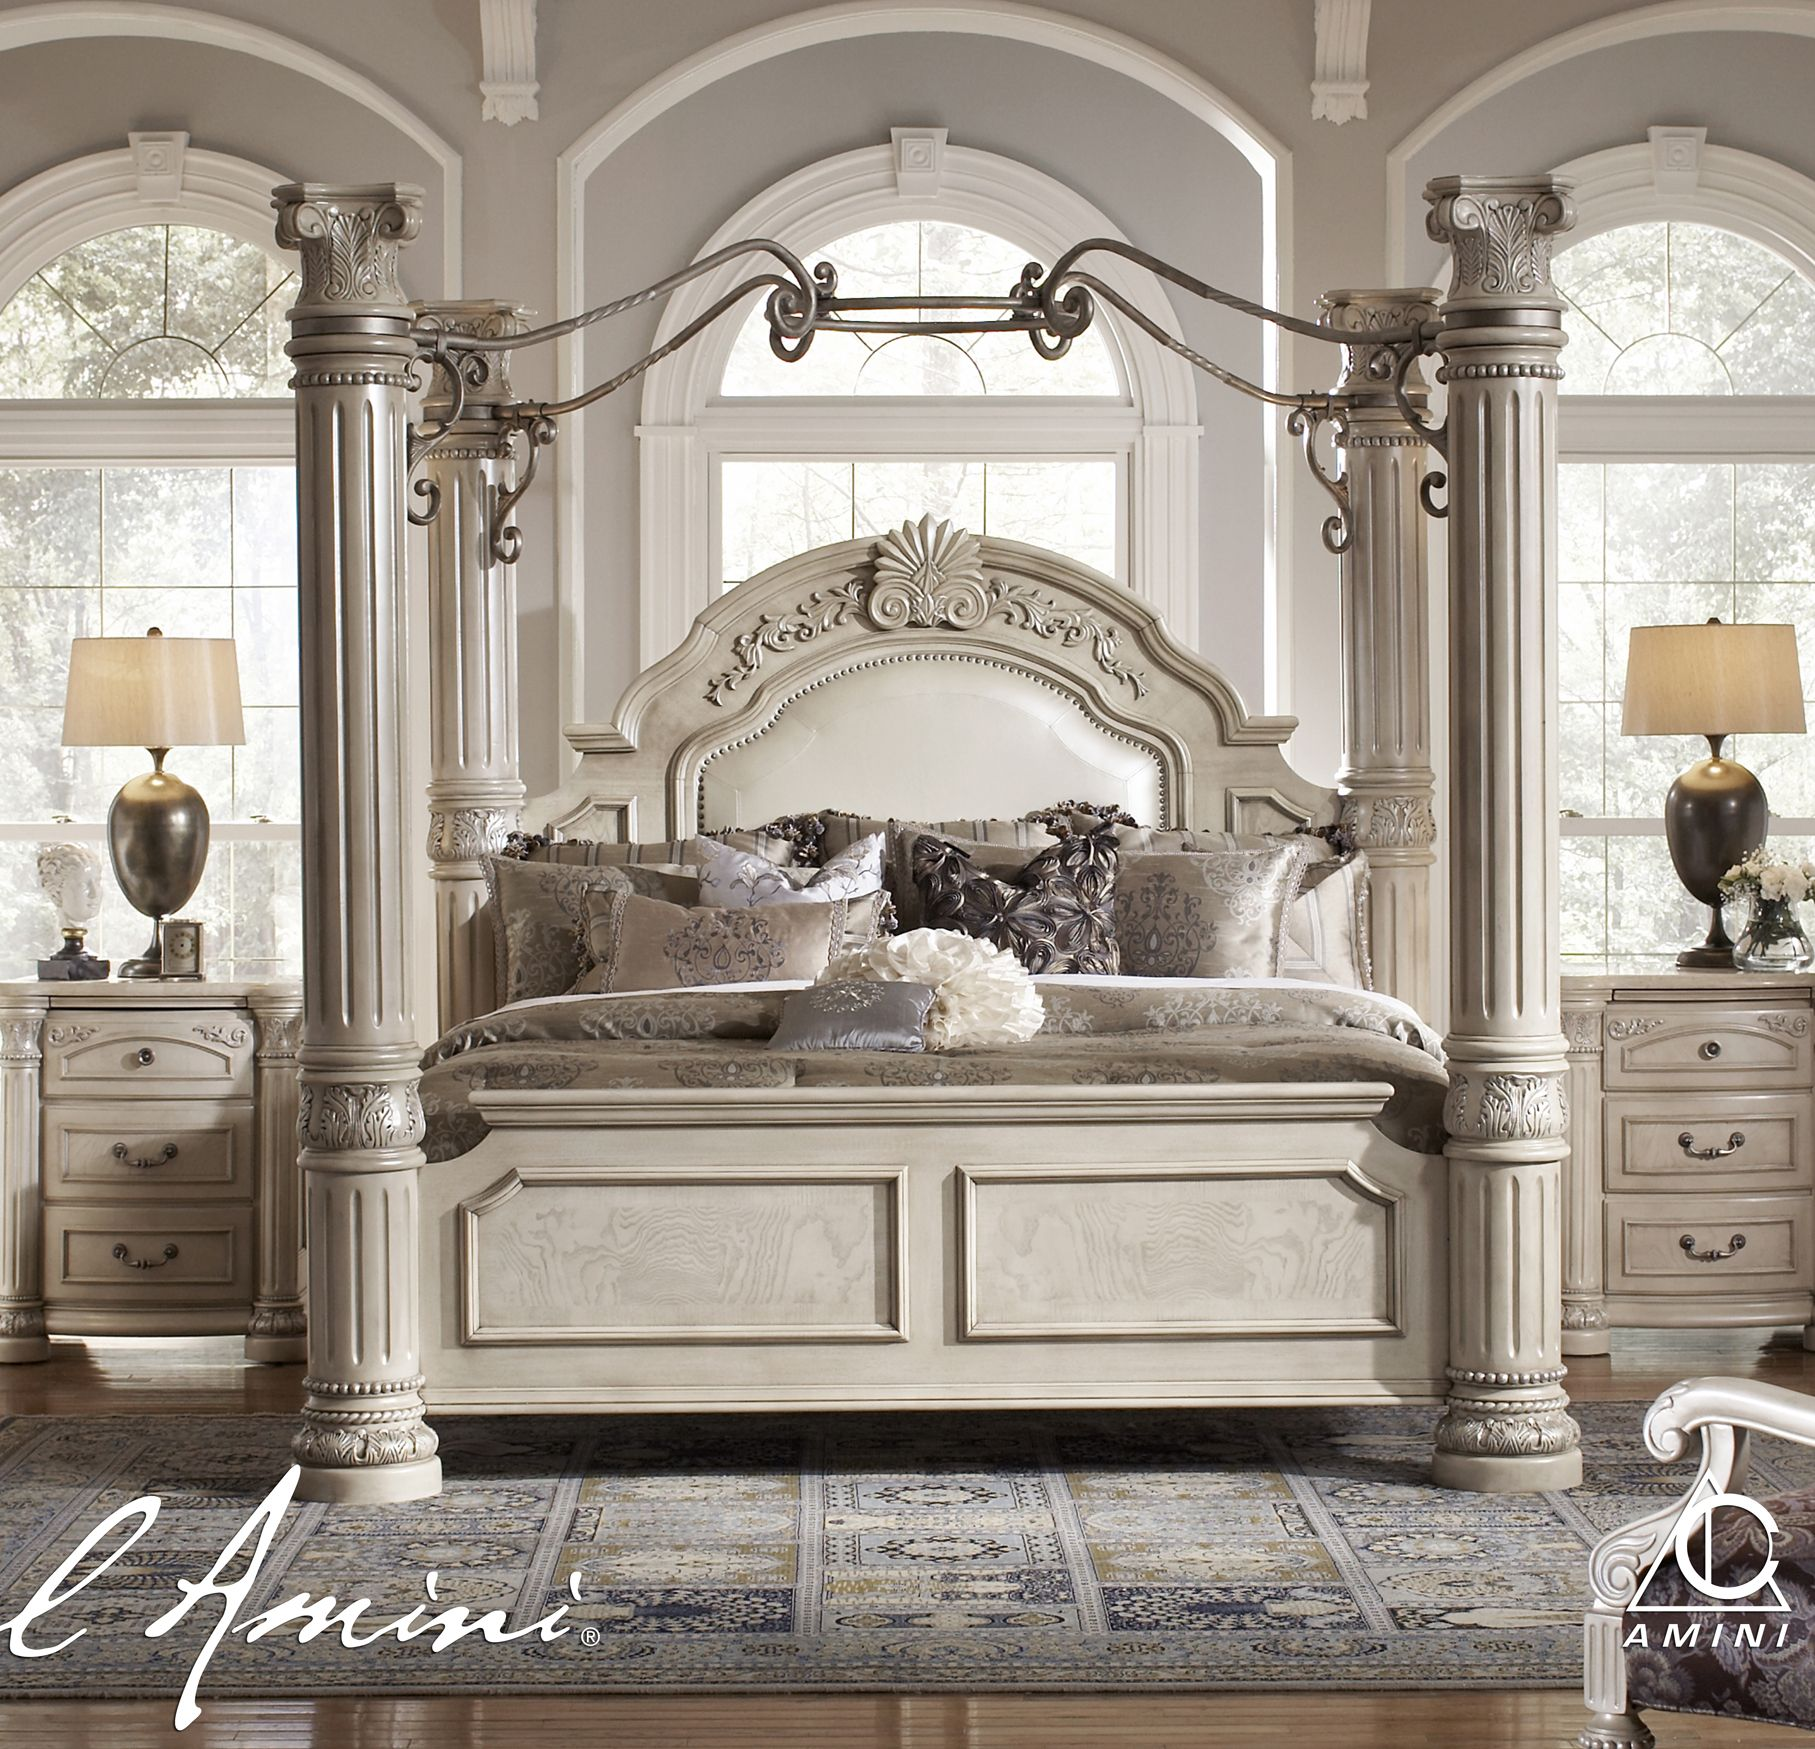 AICO Monte Carlo II King Size Poster Bed With Canopy In Silver - Aico torino bedroom set